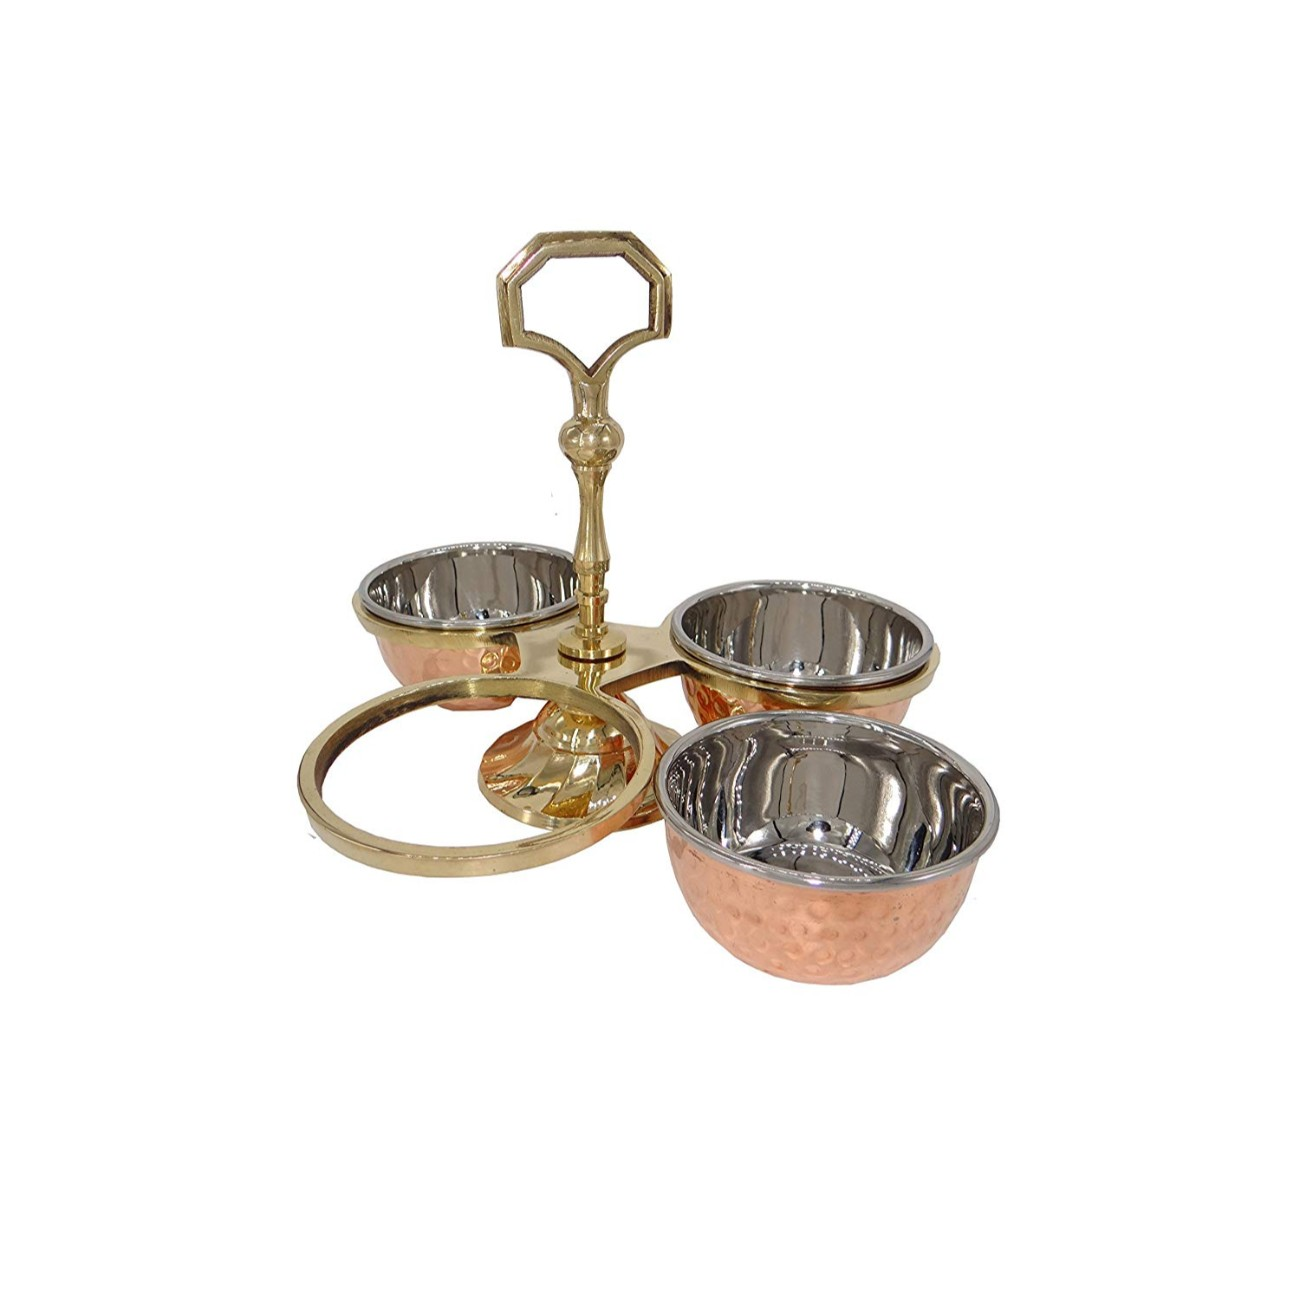 3 Compartment Set Steel Copper 3 Bowl Pickle, Mouth Freshener Serving